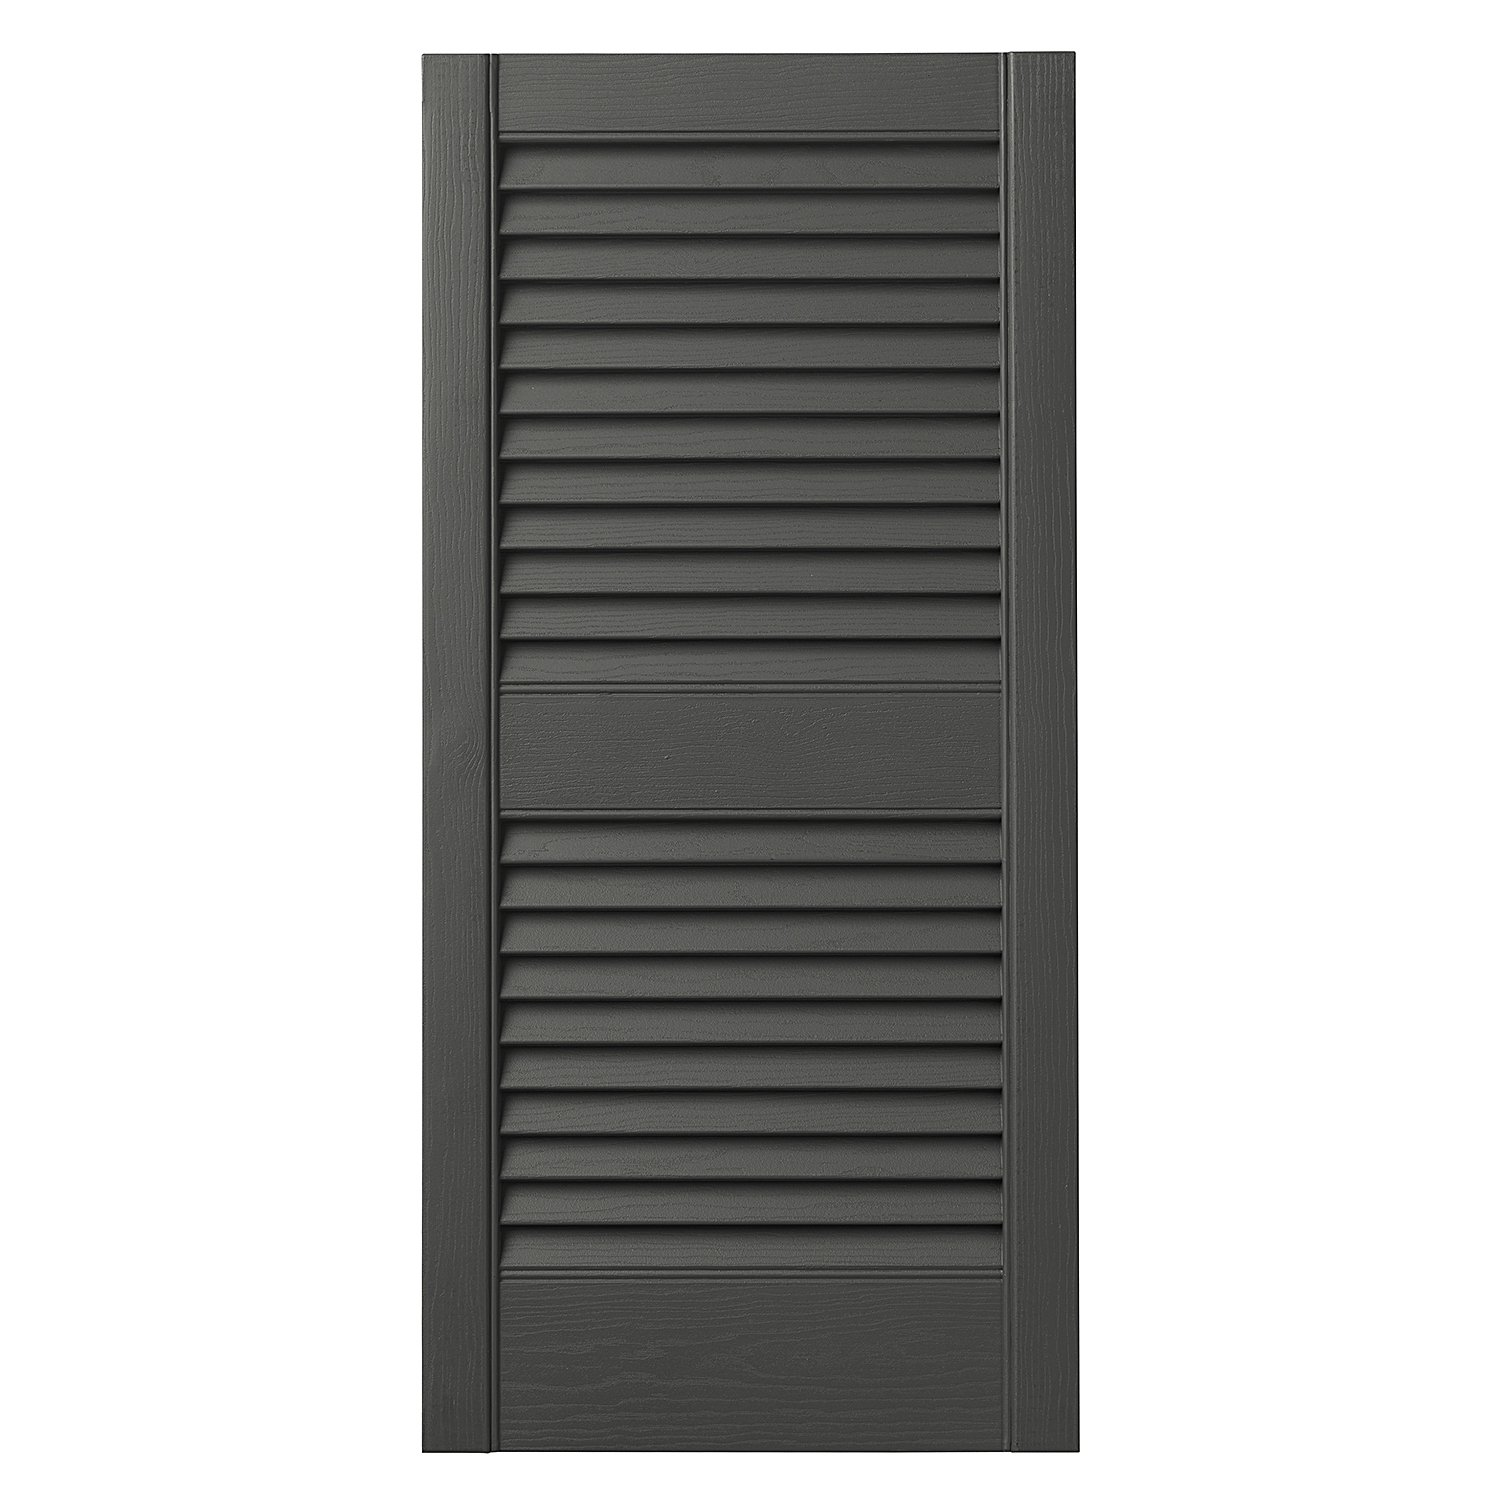 Ply Gem Shutters and Accents VINLV1543 93 Louvered Shutter, 15'', Spanish Moss